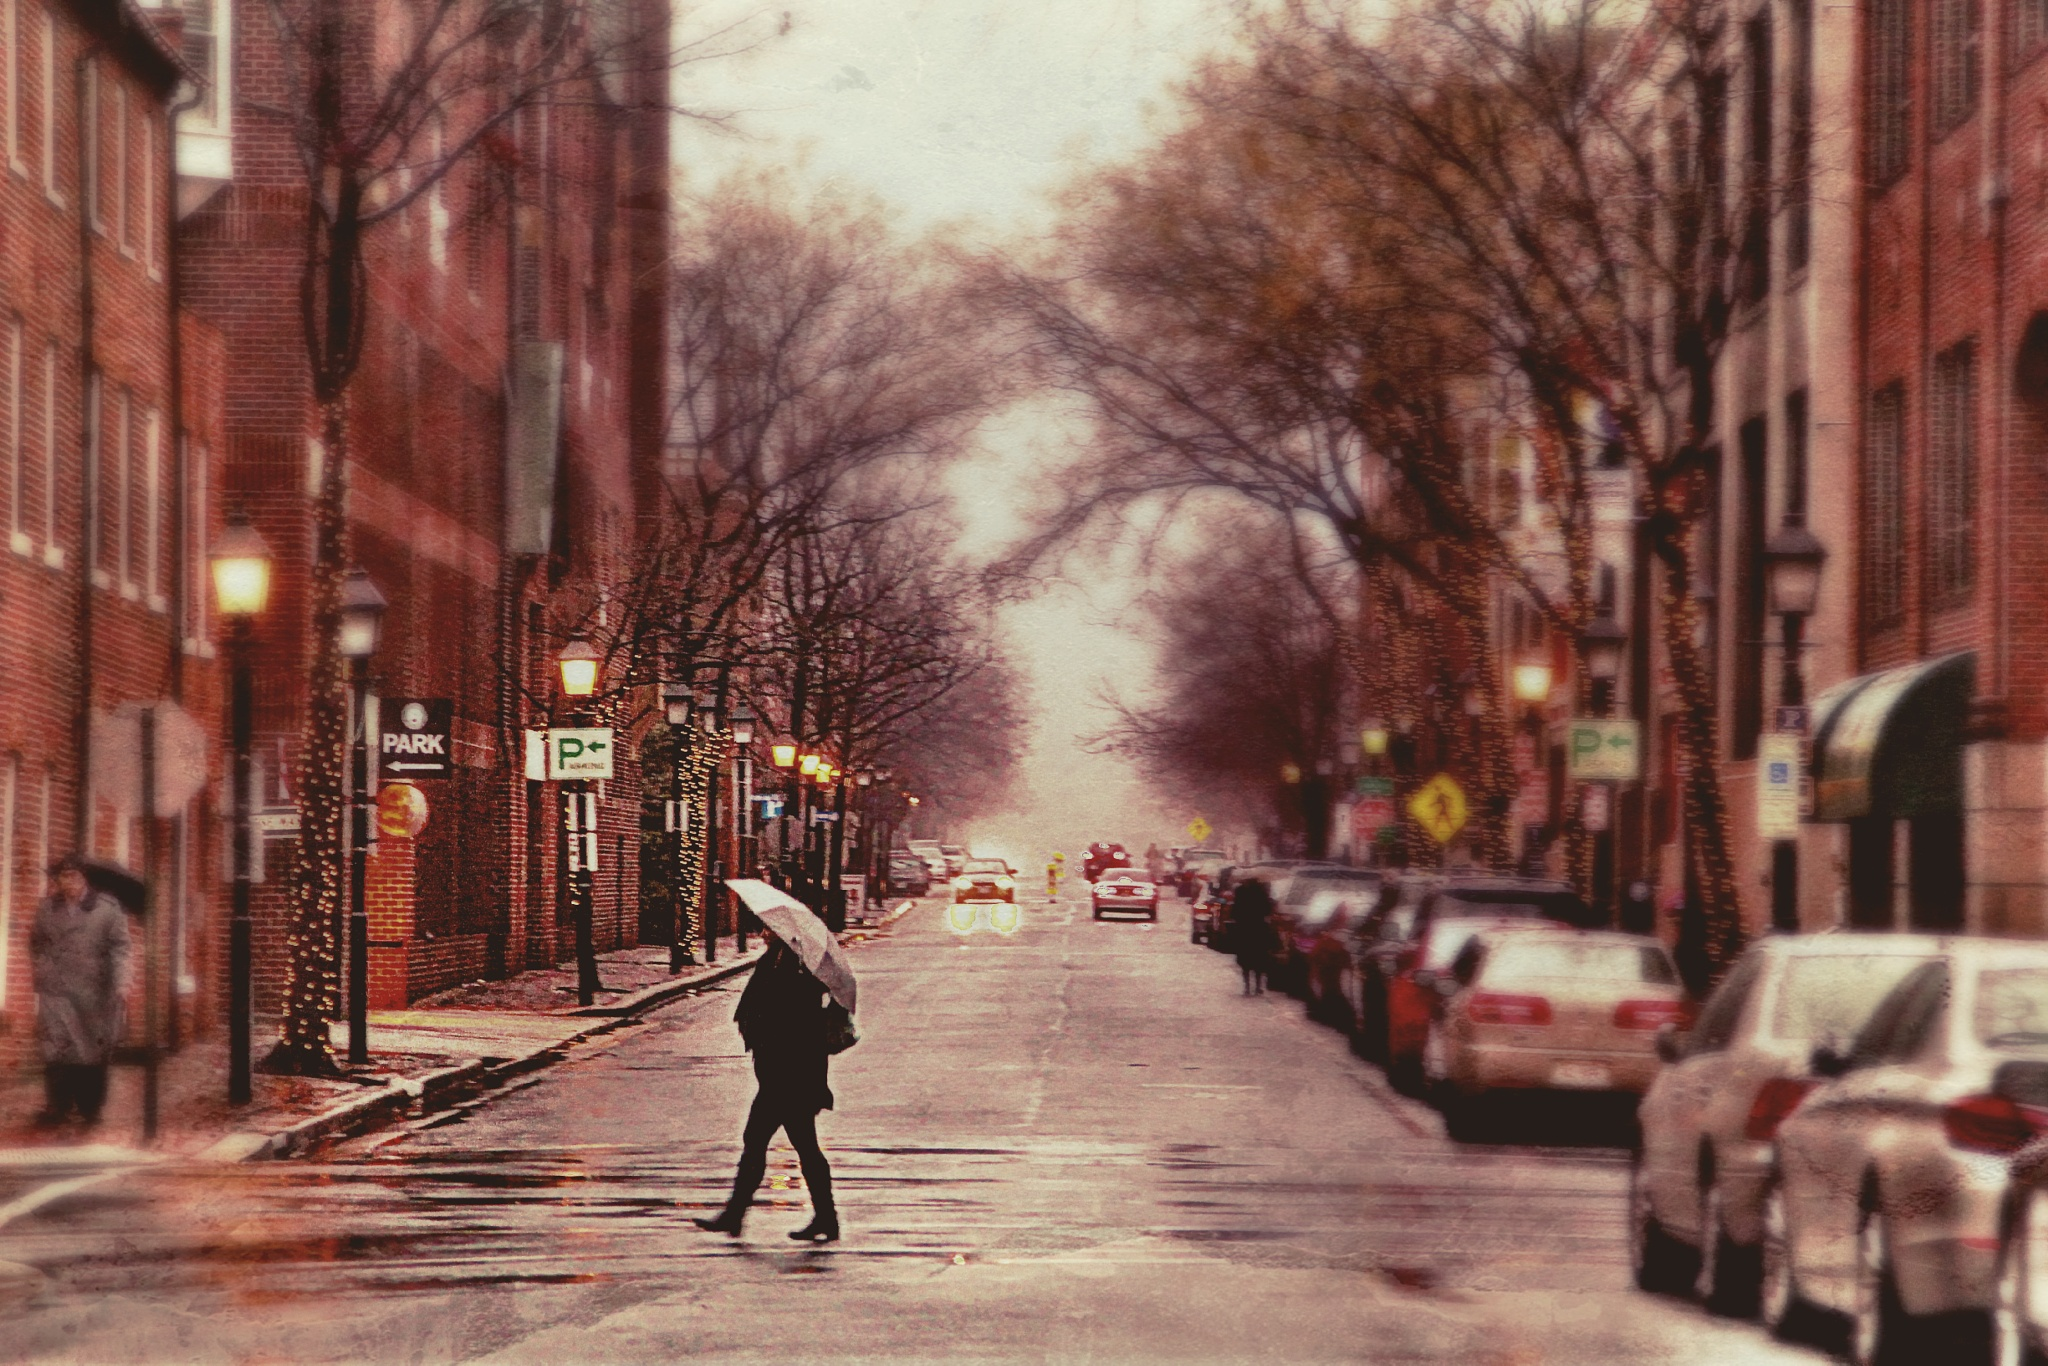 Old Town Alexandria, VA by Patryce Haltiwanger Phillips